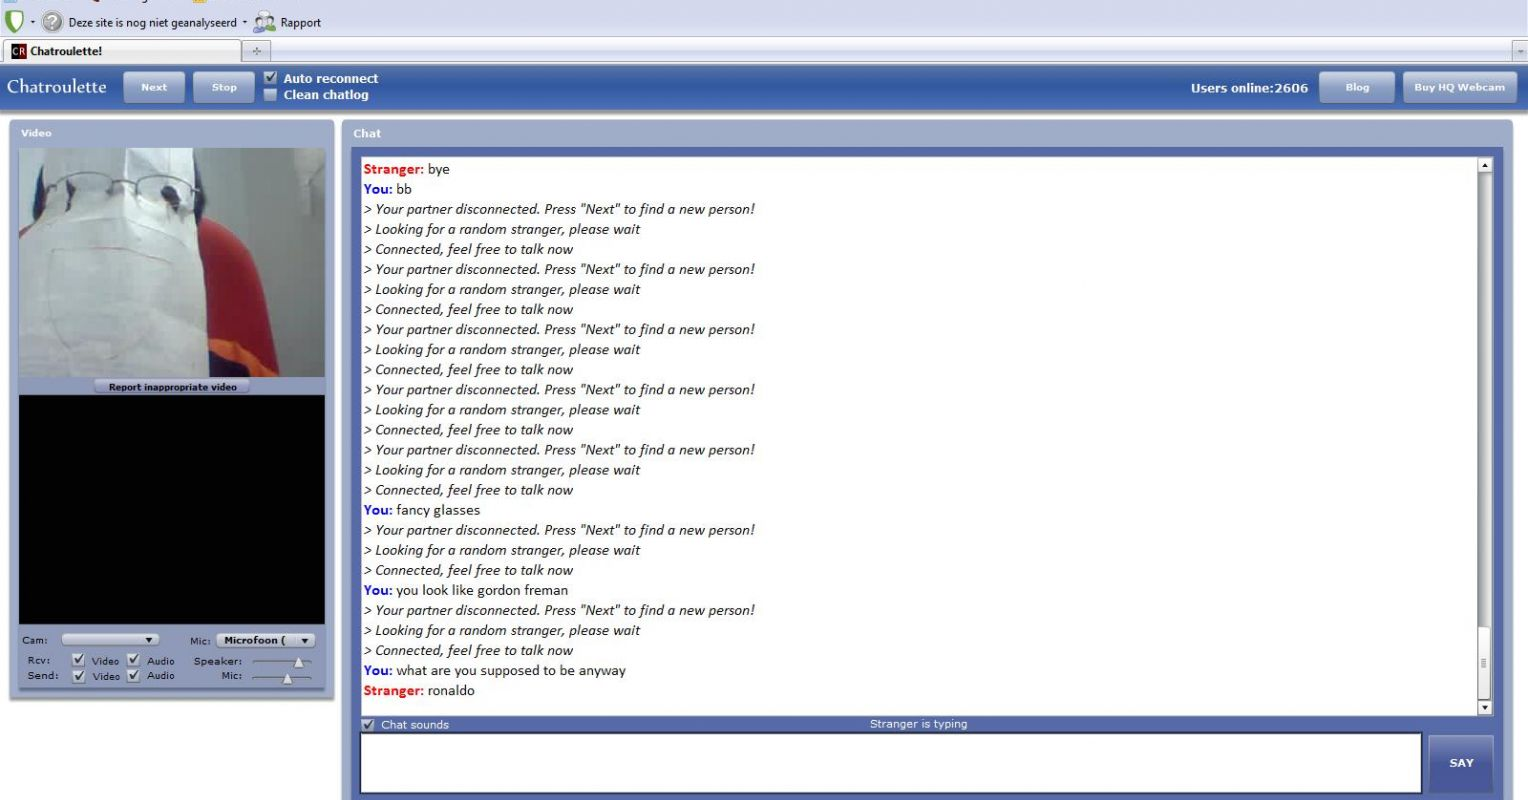 Chat chatroulette Omegle chat